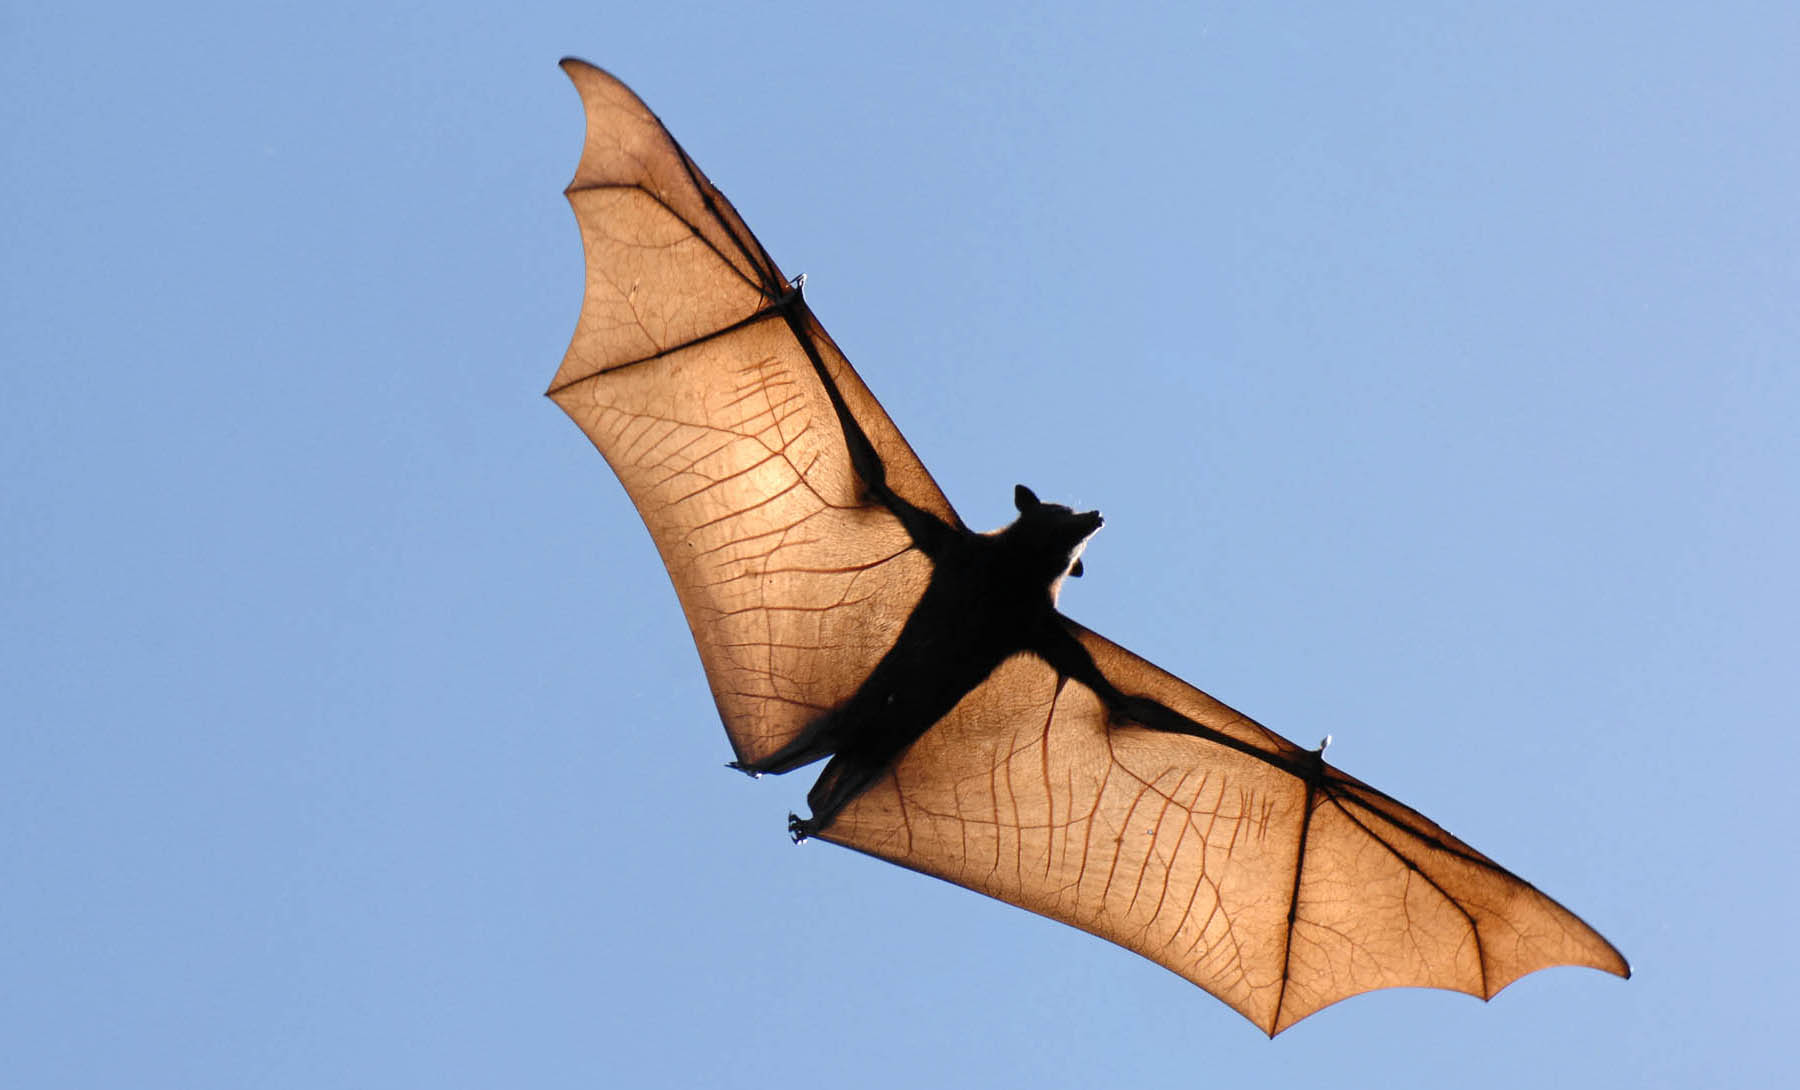 Creating Bio-inspired Wings for High-Performance Drones